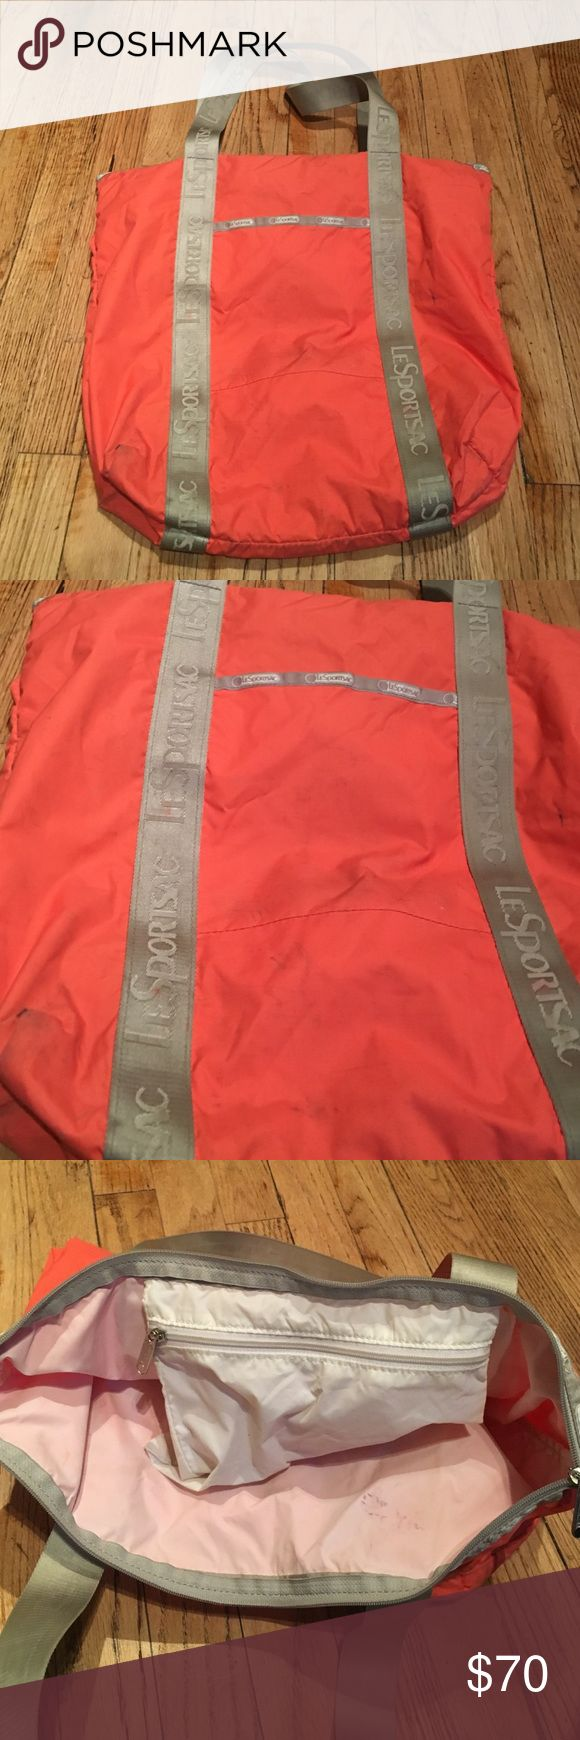 LeSportSac nylon pink / orange tote Pink/orange (sherbet) Le Sportsac tote bag. Works well, mild stains from wear. LeSportsac Bags Totes